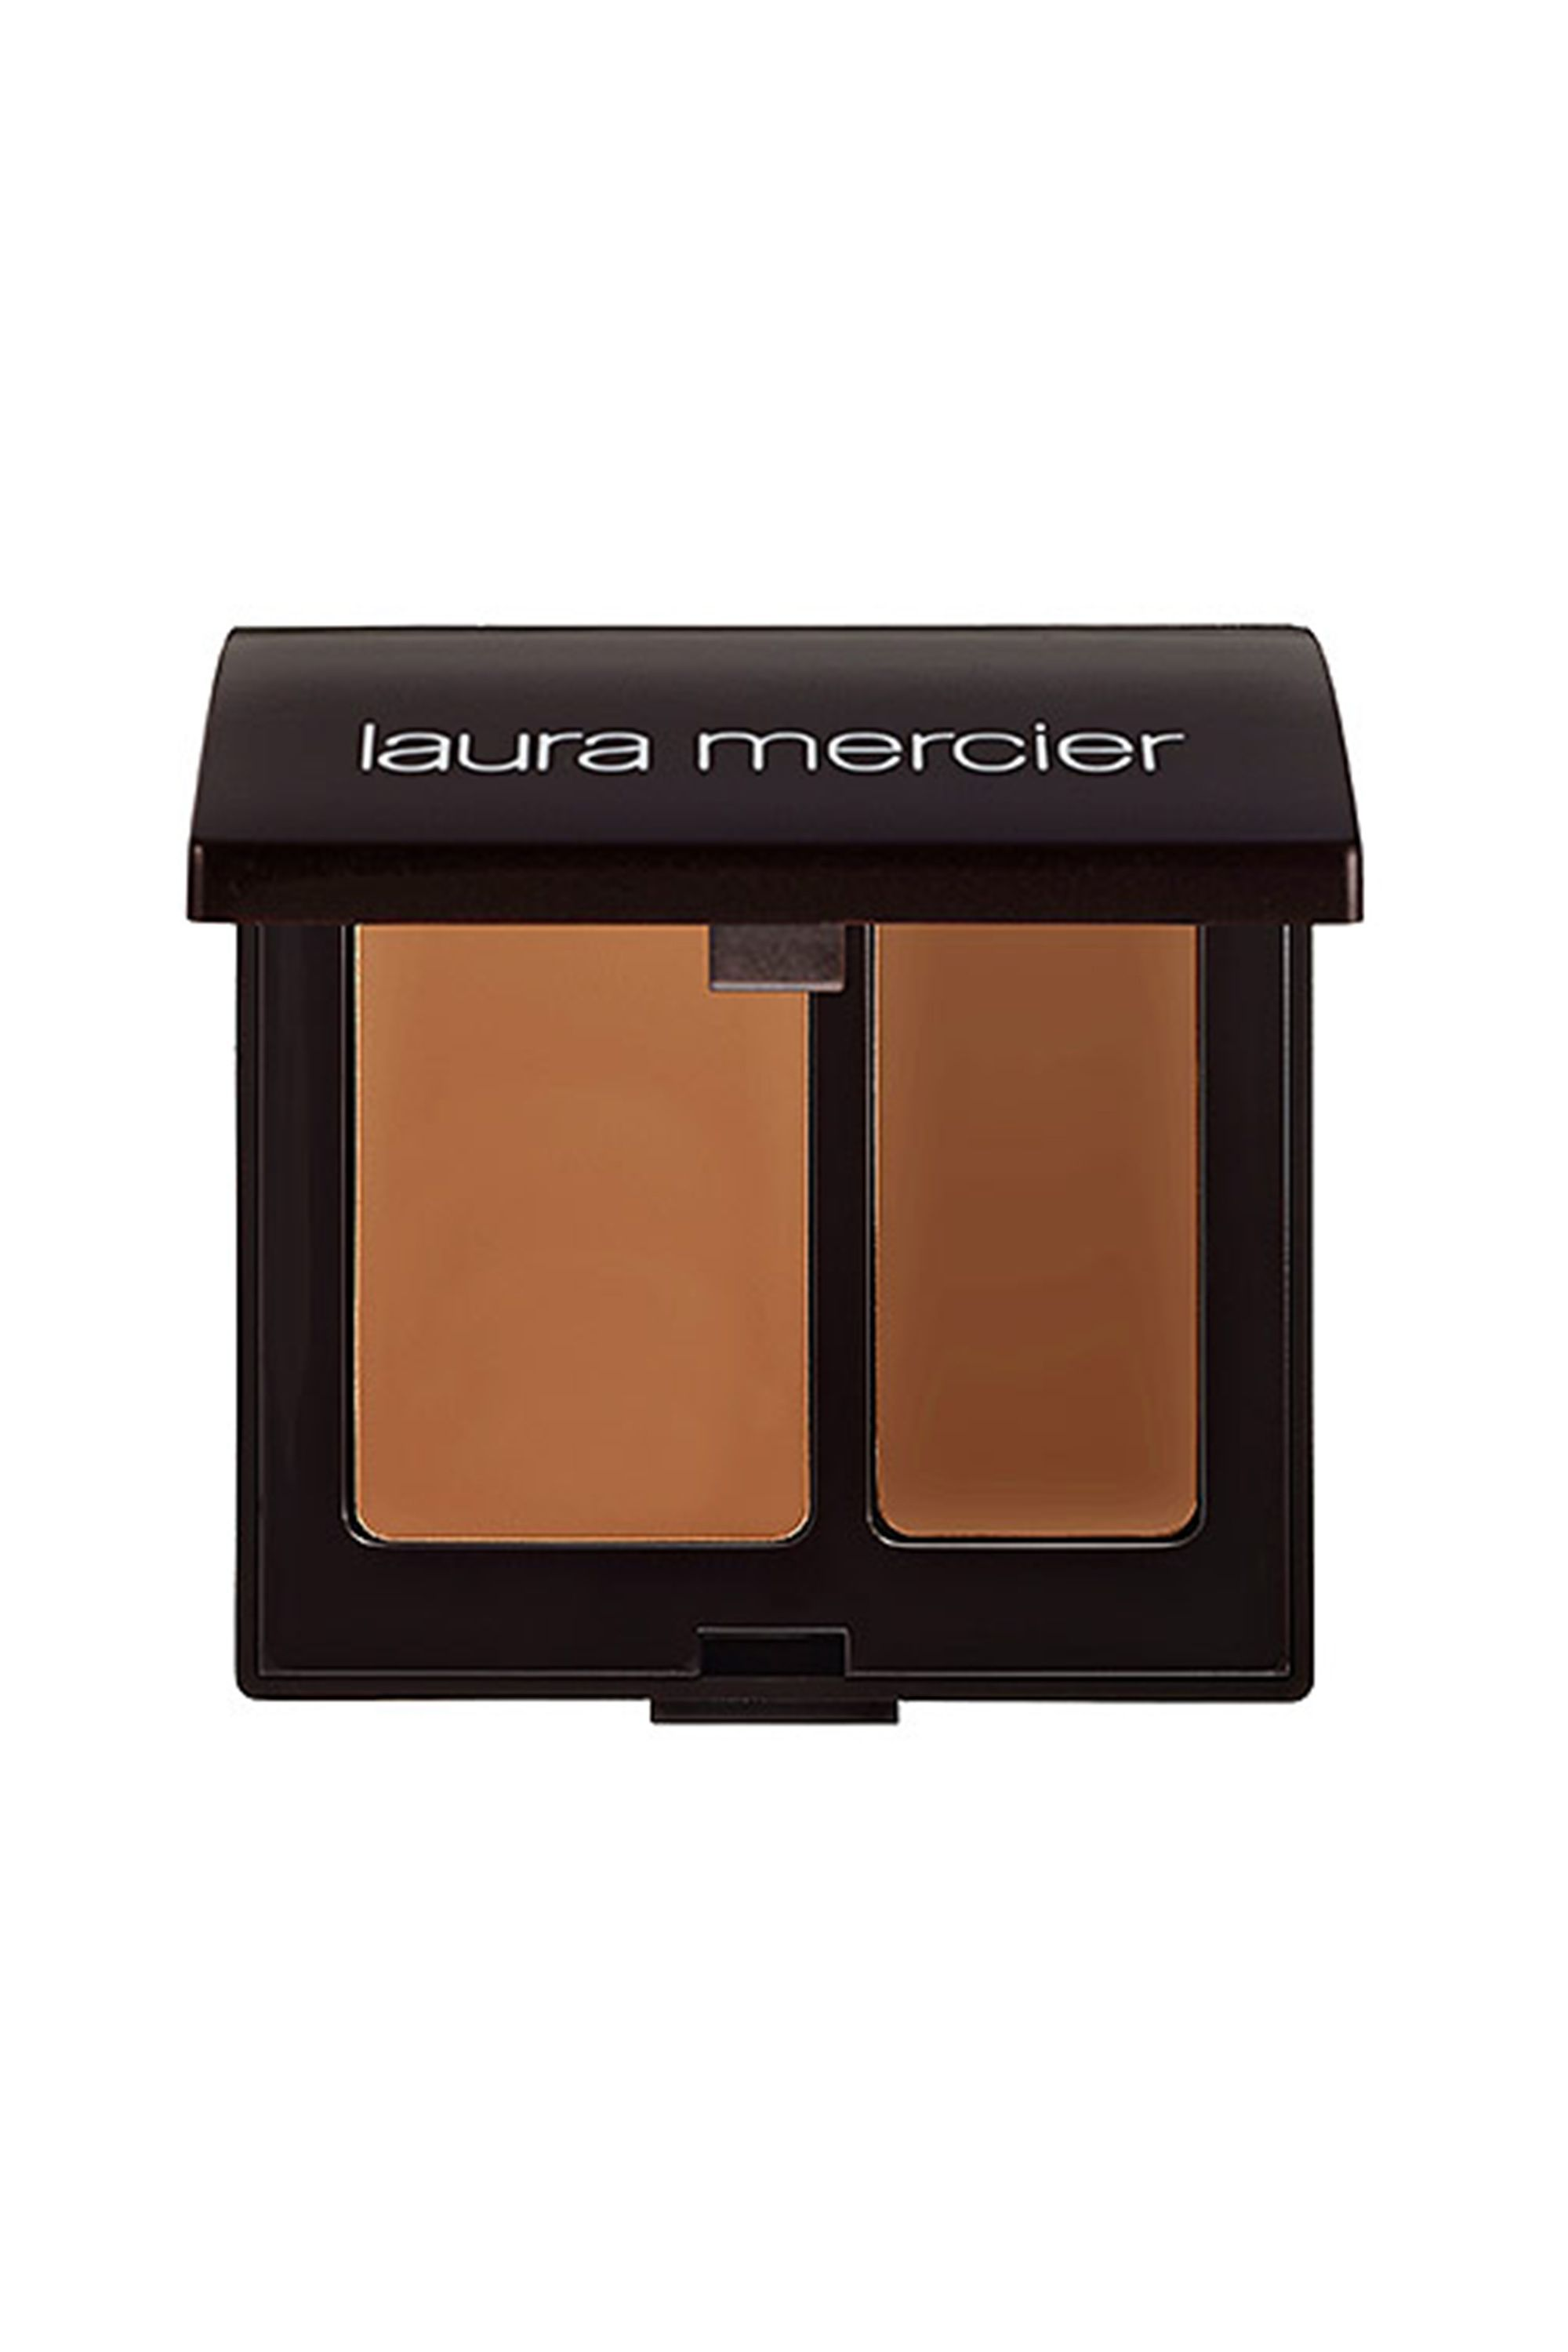 """<p>This all-time pro fave let's you color match to your skin by mixing the dual-shade concealer. It's called camouflage because it can disguise seriously dark circles and bright red blemishes without piling it on.</p><p><em data-redactor-tag=""""em"""" data-verified=""""redactor"""">$35, </em><a href=""""https://www.lauramercier.com/cover-with-concealer/secret-camouflage-prod220004.html"""" data-tracking-id=""""recirc-text-link""""><em data-redactor-tag=""""em"""" data-verified=""""redactor"""">lauramercier.com</em></a></p>"""